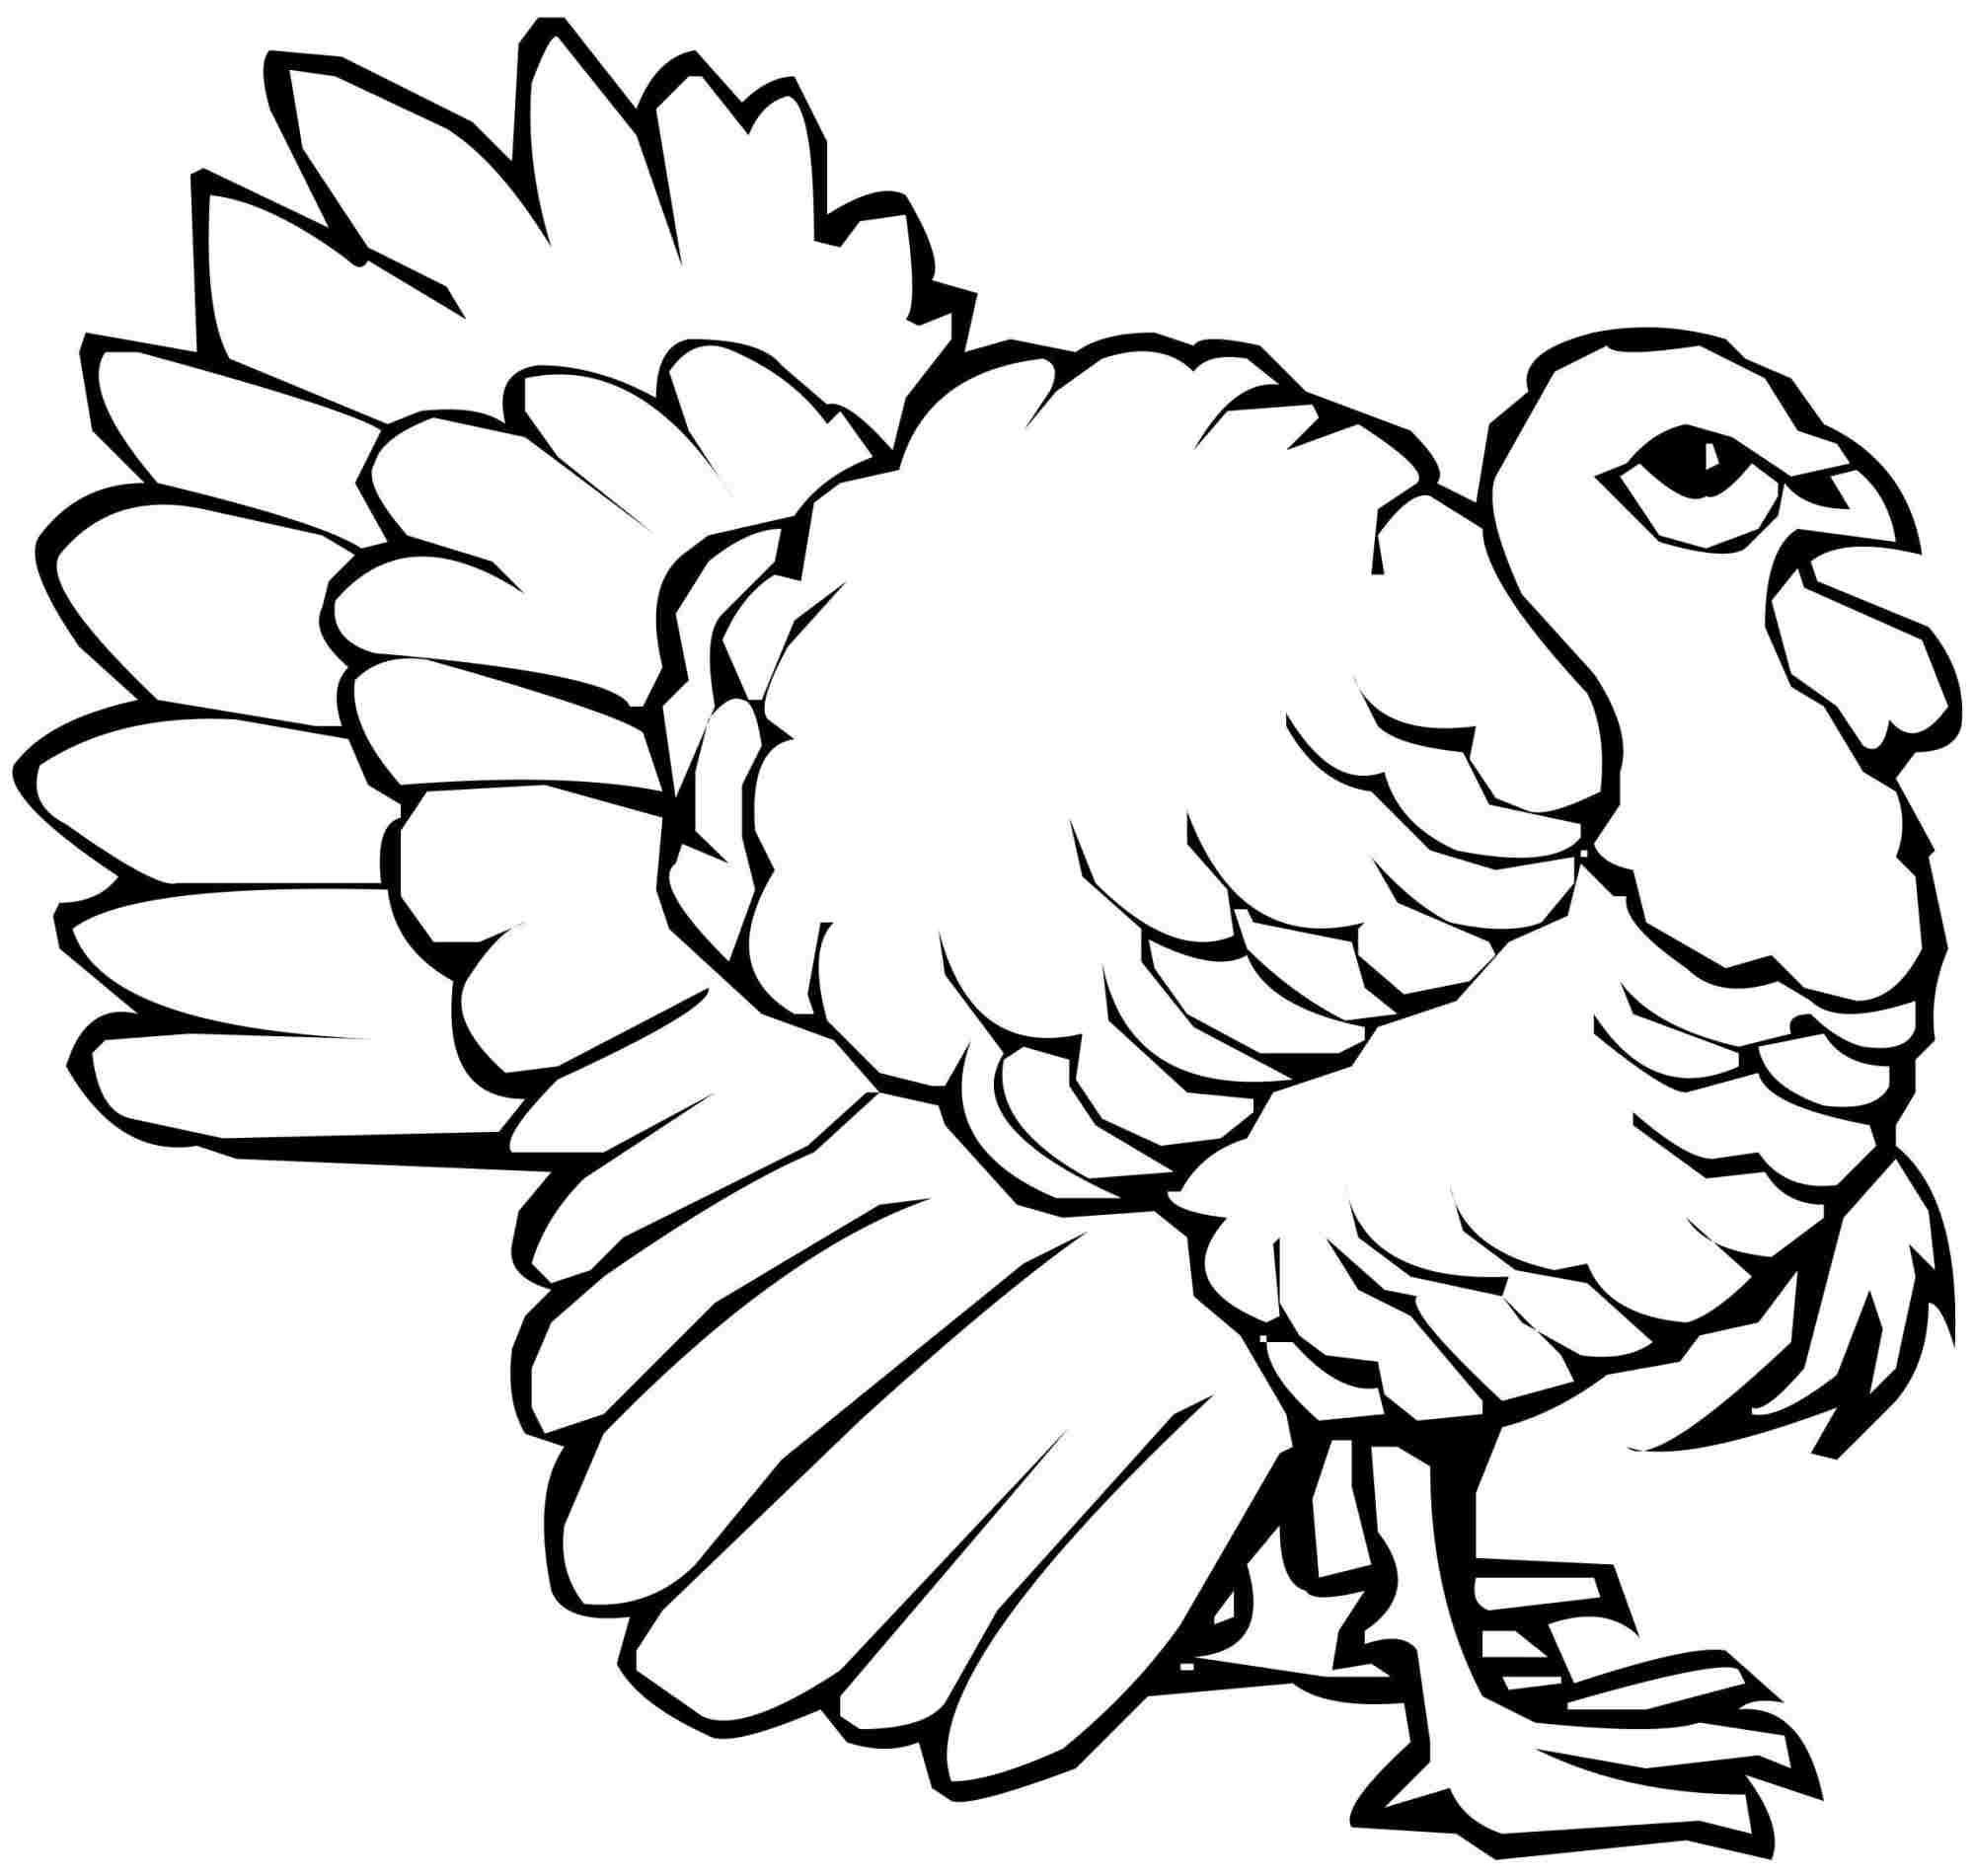 Thanksgiving Turkey Colouring Pages For Girls Boys Color